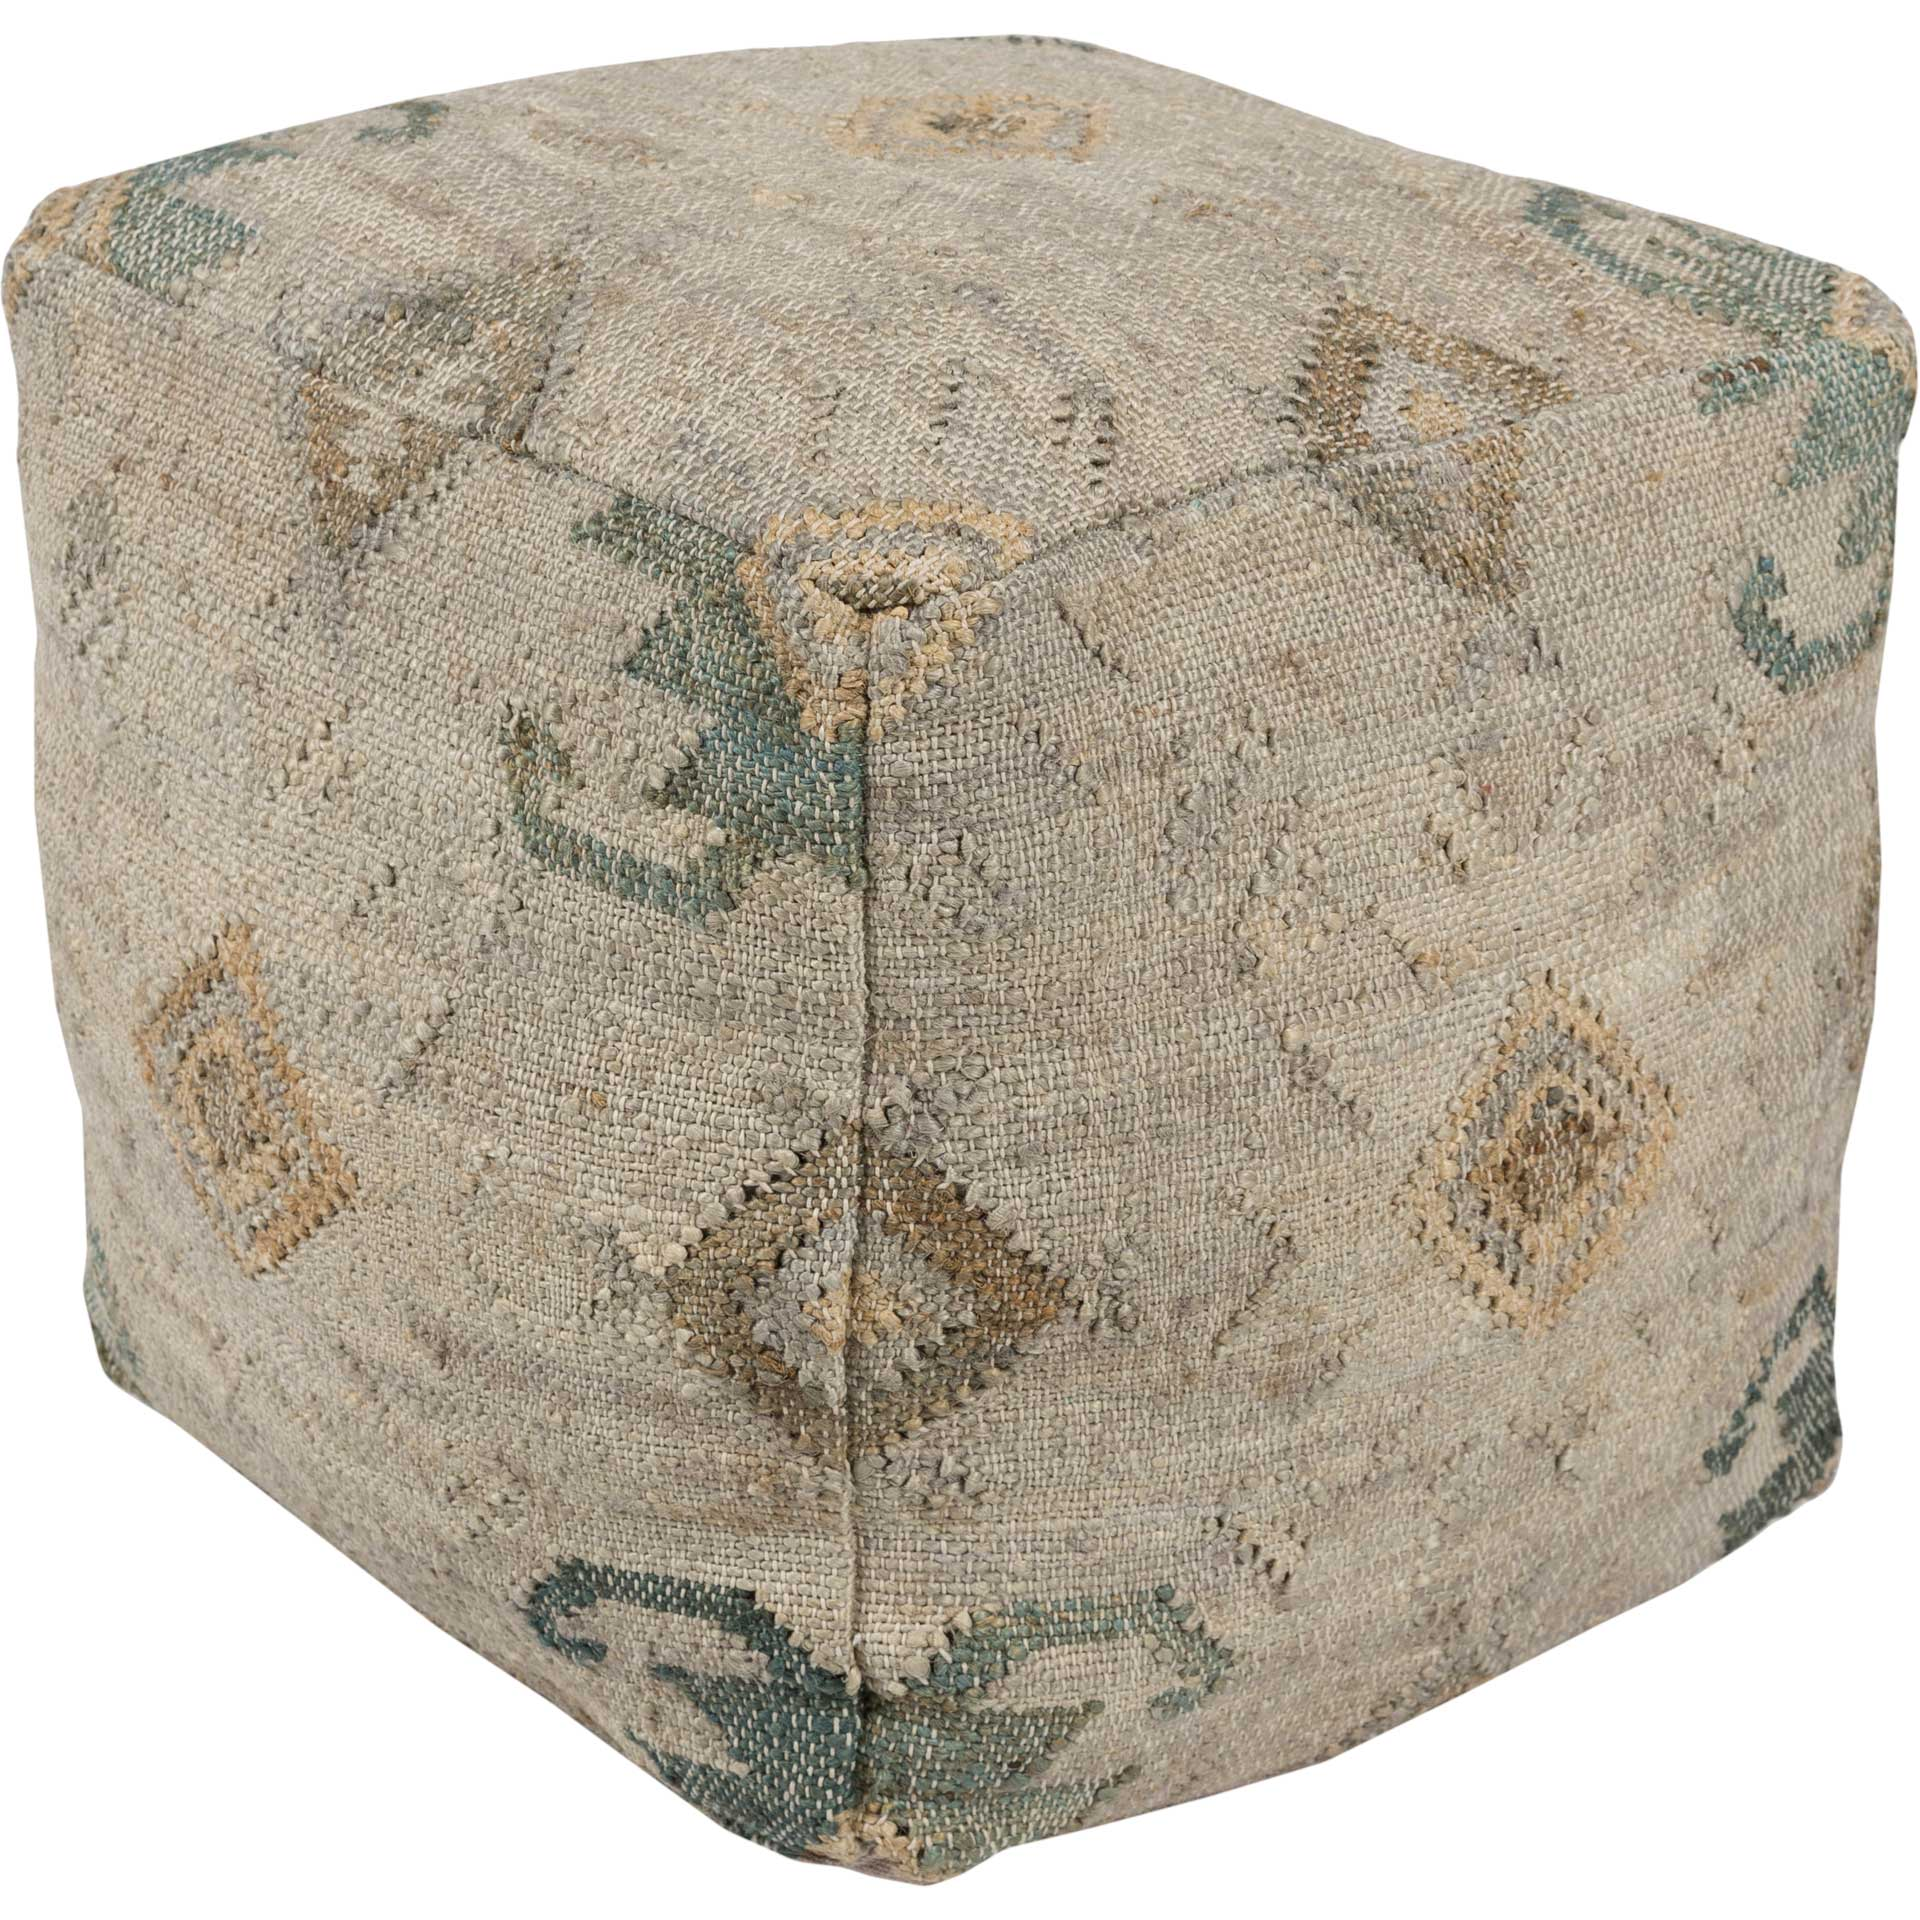 Lennox Pouf Teal/Navy/Dark Brown